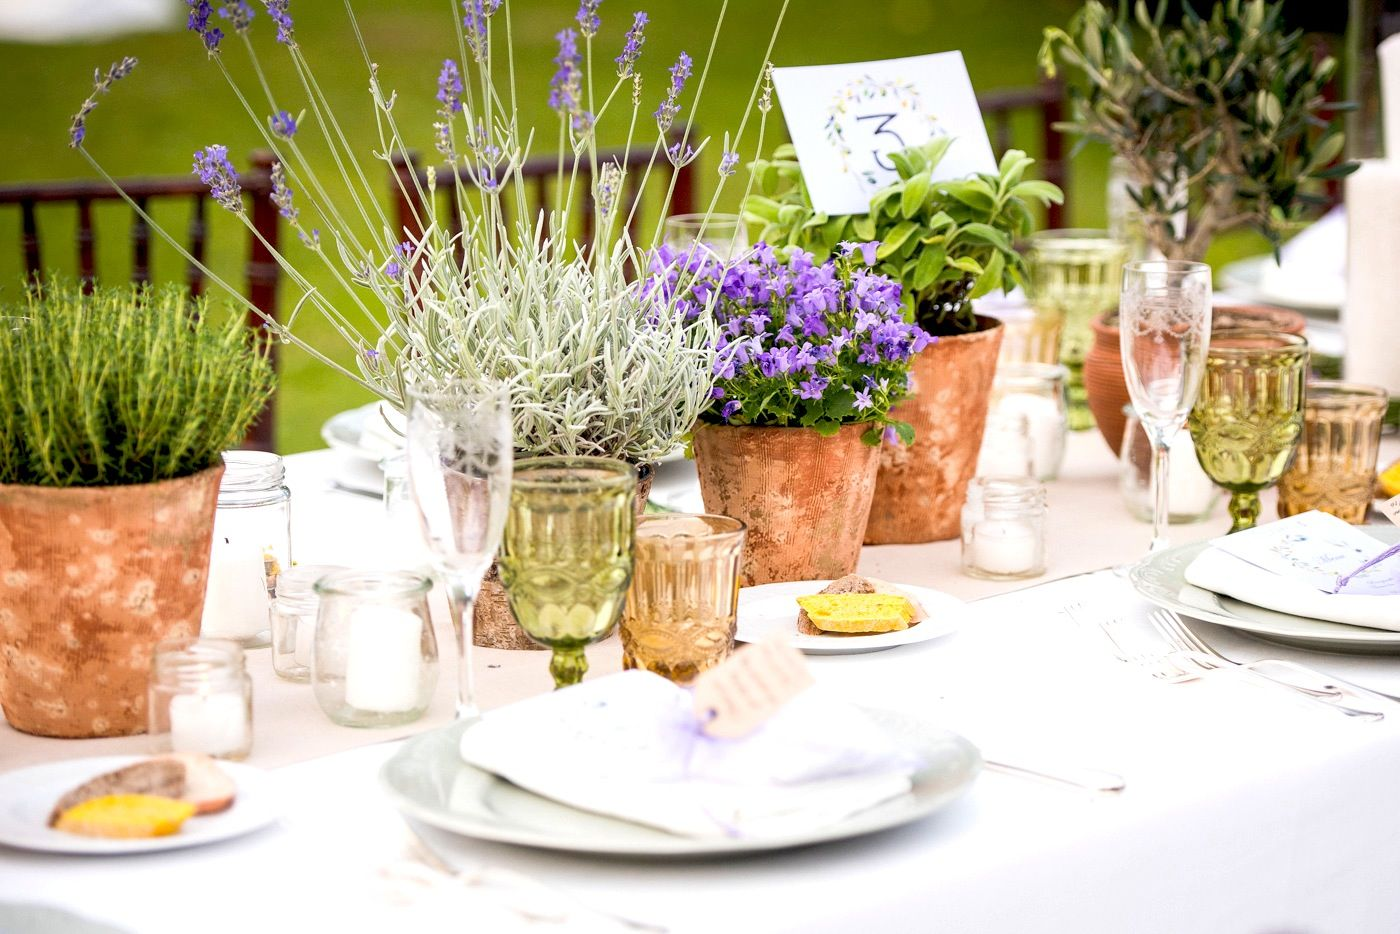 Simple terracotta pots filled with garden plants for a Tuscan Wedding Table dressed for celebration.